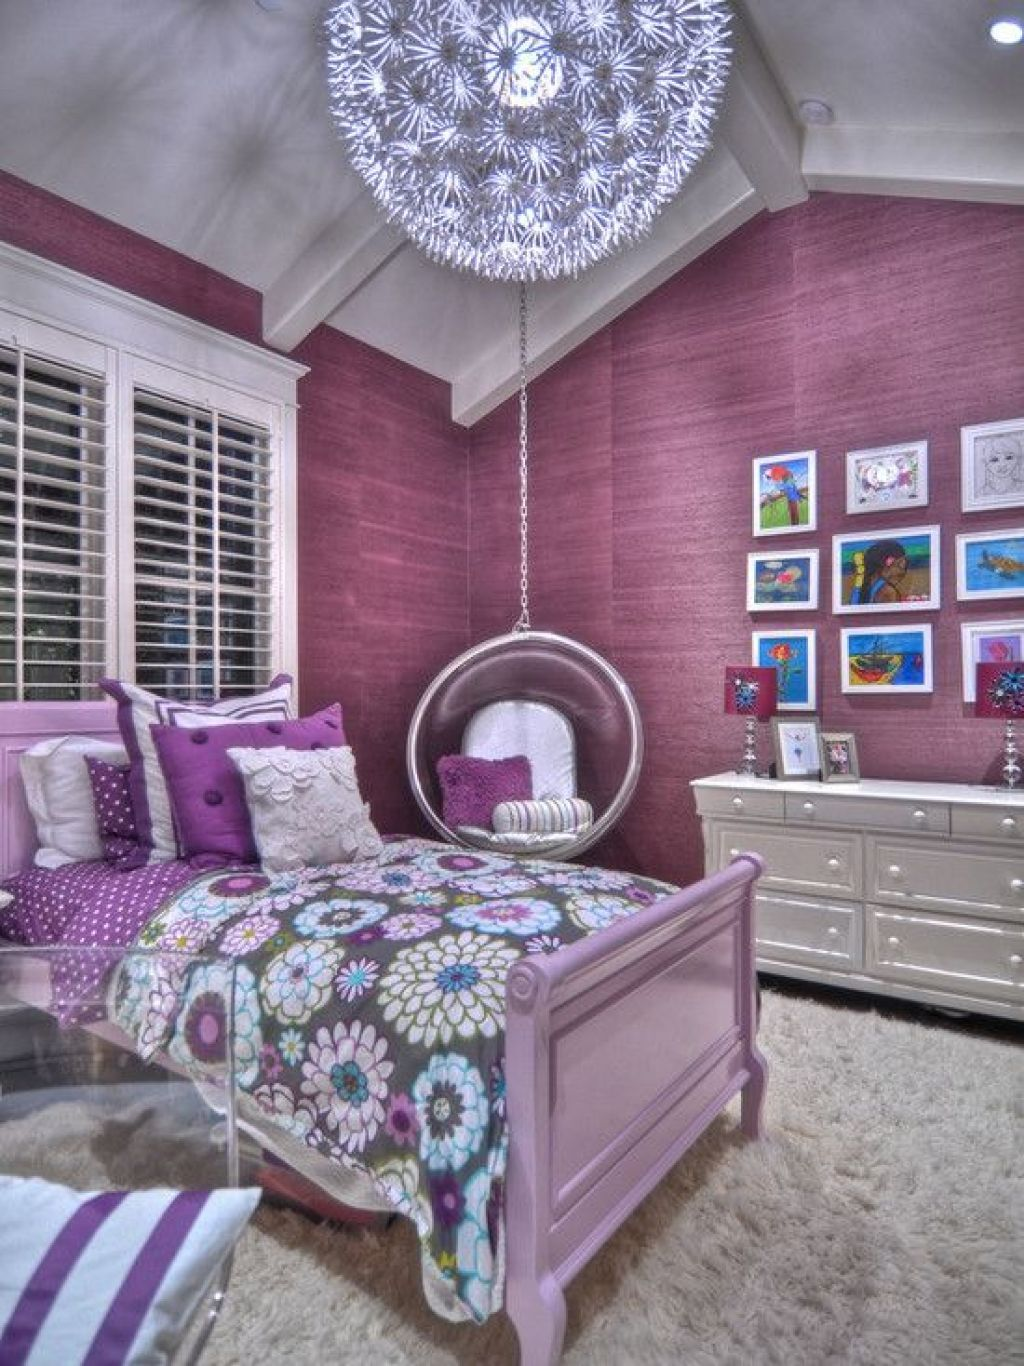 Bedroom Purple Bedroom Decor Ideas With Ceiling Swings And Ball Pendant Light With Images Purple Bedroom Design Purple Room Design Bedroom Design